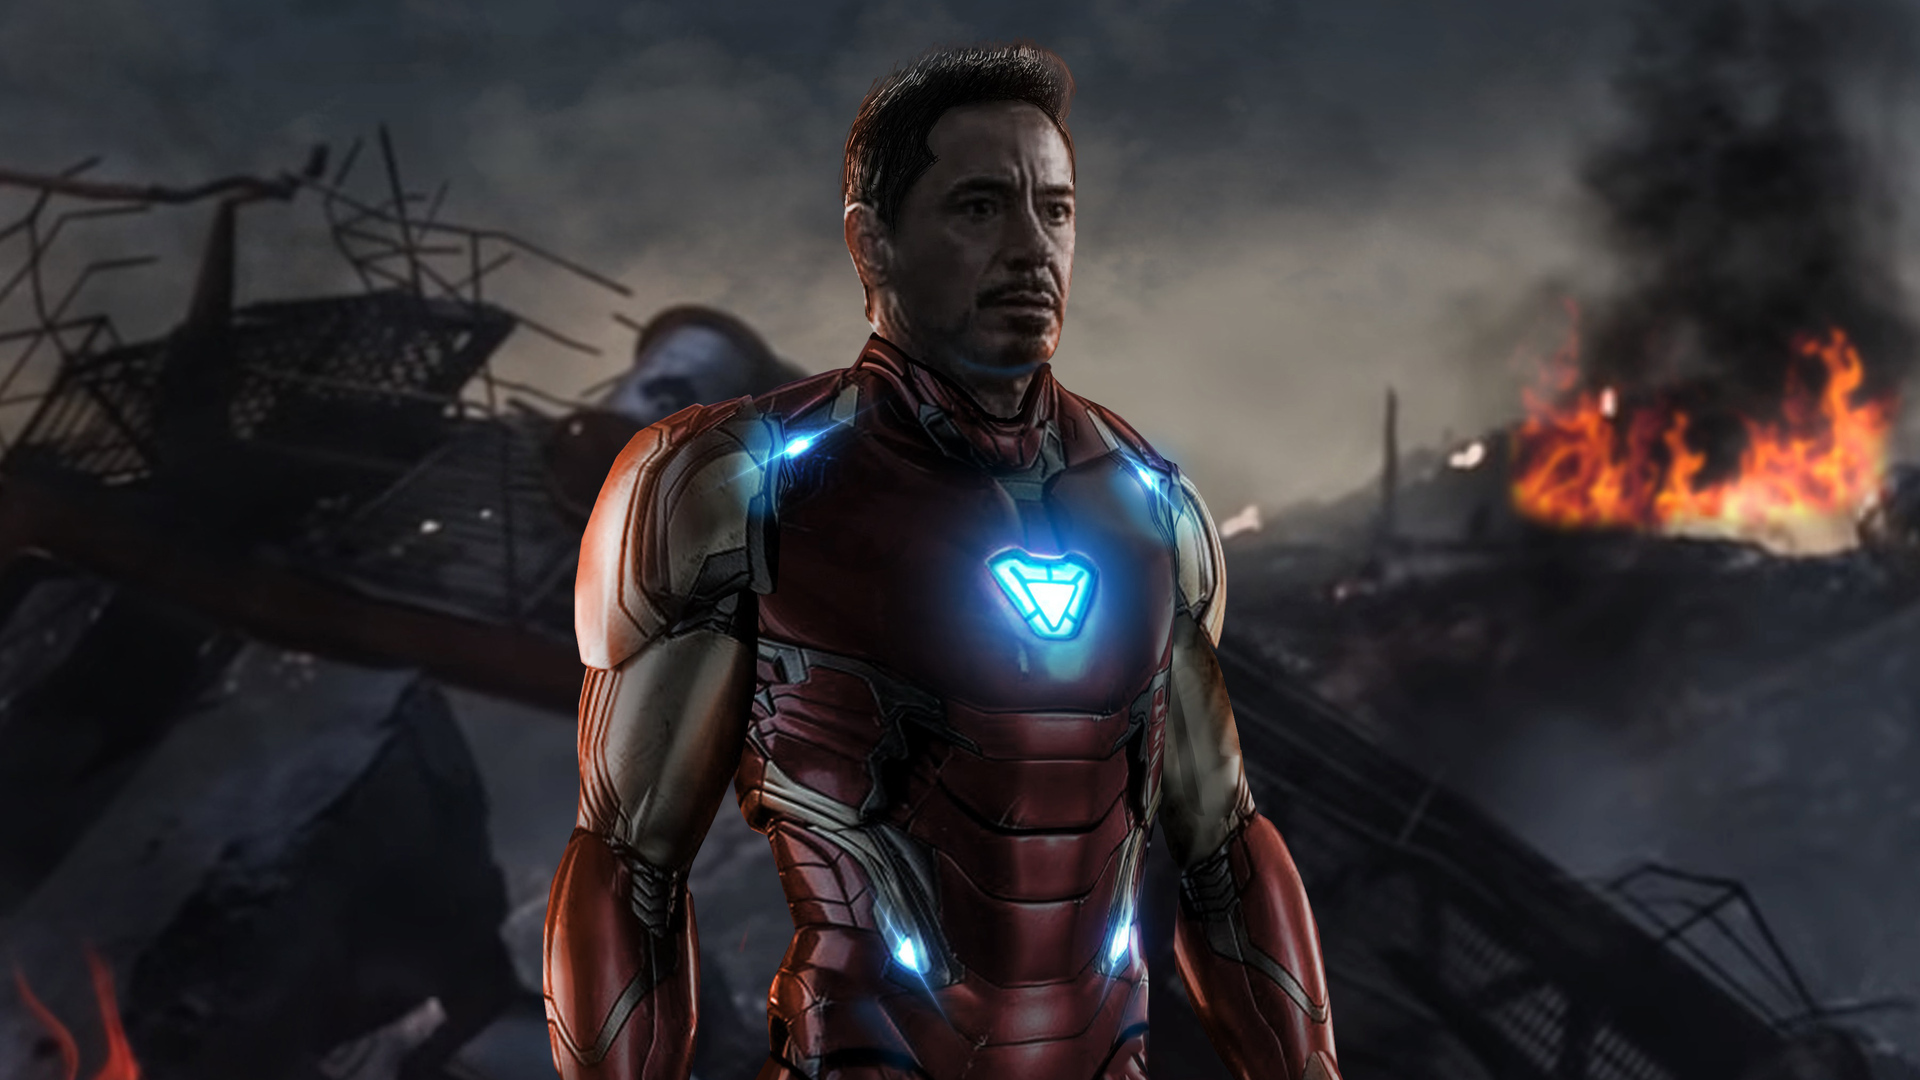 1920x1080 Iron Man Avengers Endgame Laptop Full Hd 1080p Hd 4k Wallpapers Images Backgrounds Photos And Pictures